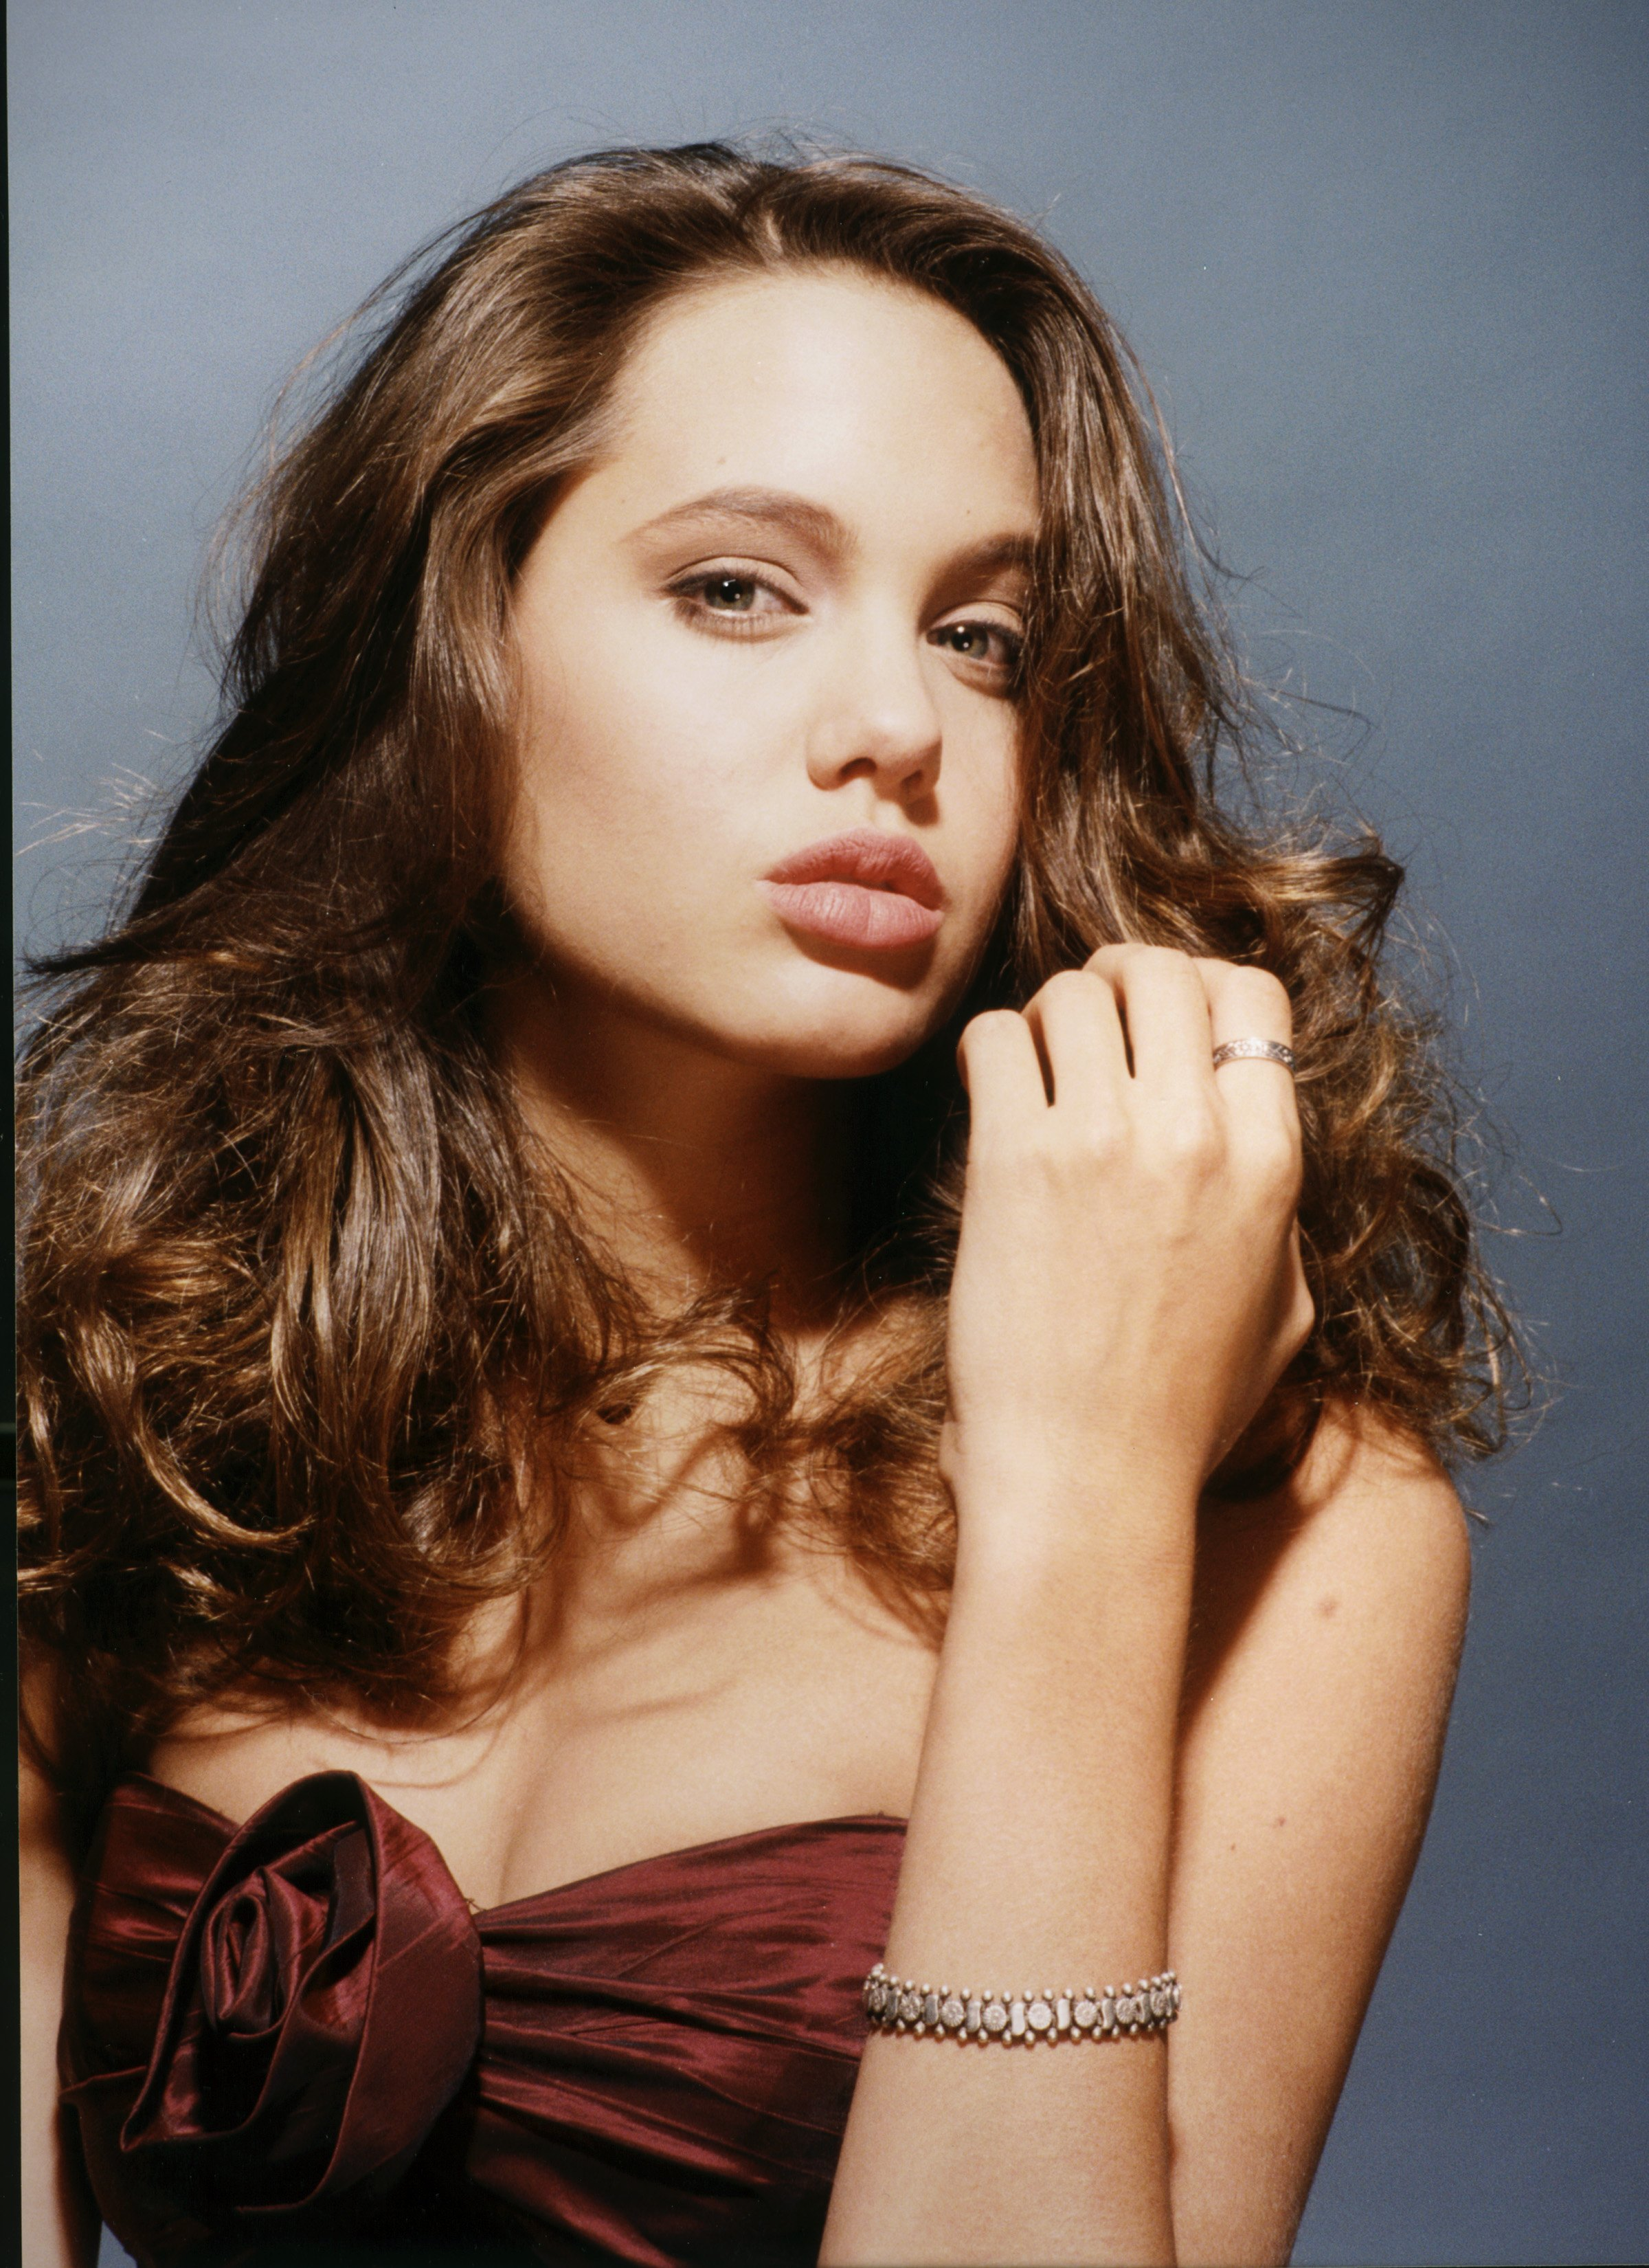 16 Year Old Found Safe Following Amber Alert In Sjc: Angelina Jolie, Actress, In Her Younger Years (PHOTO